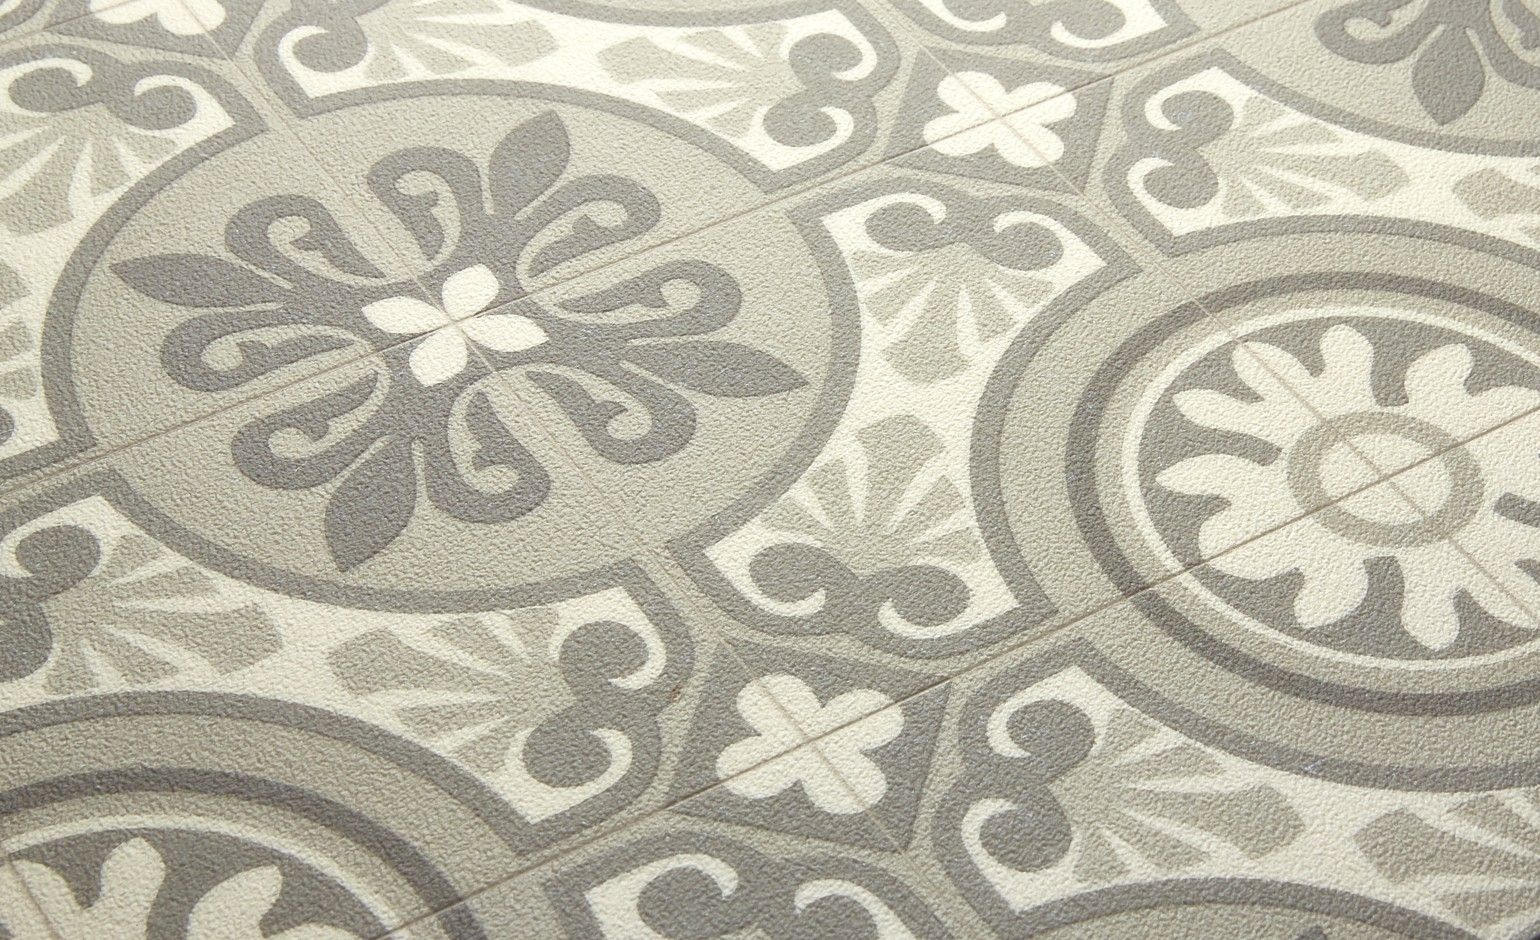 Saint maclou sol vinyle emotion carreau ciment beige - Tapis pvc carreaux de ciment ...